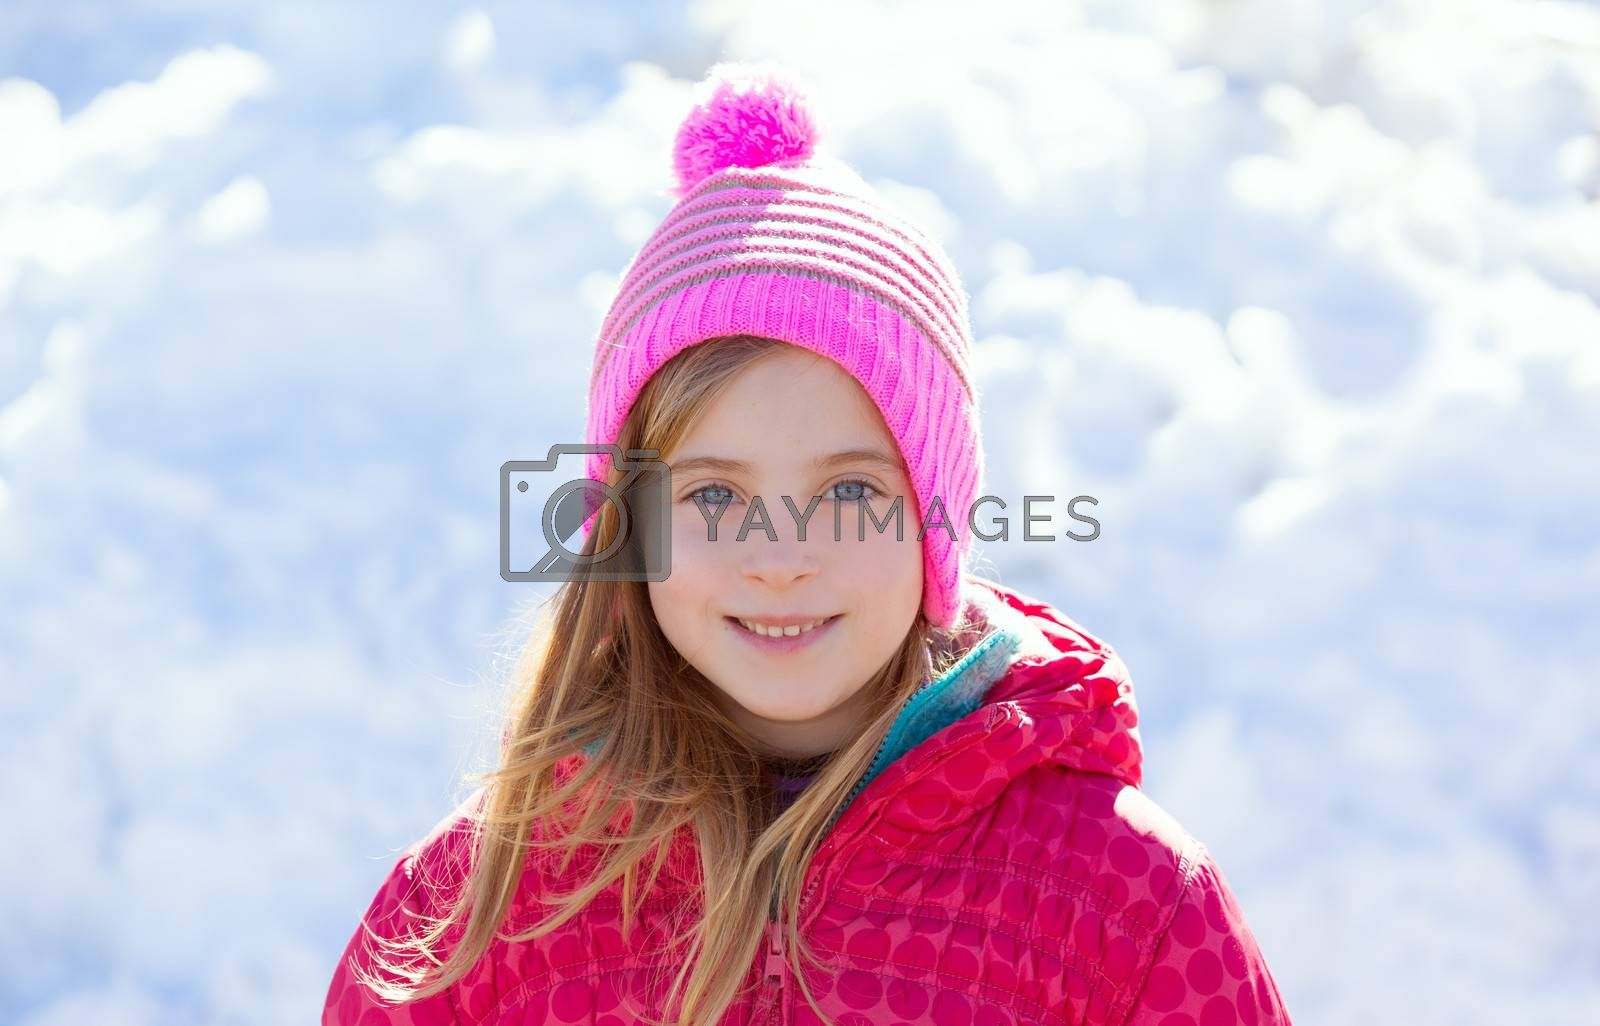 Blond kid girl winter pink hat in the snow smiling happy